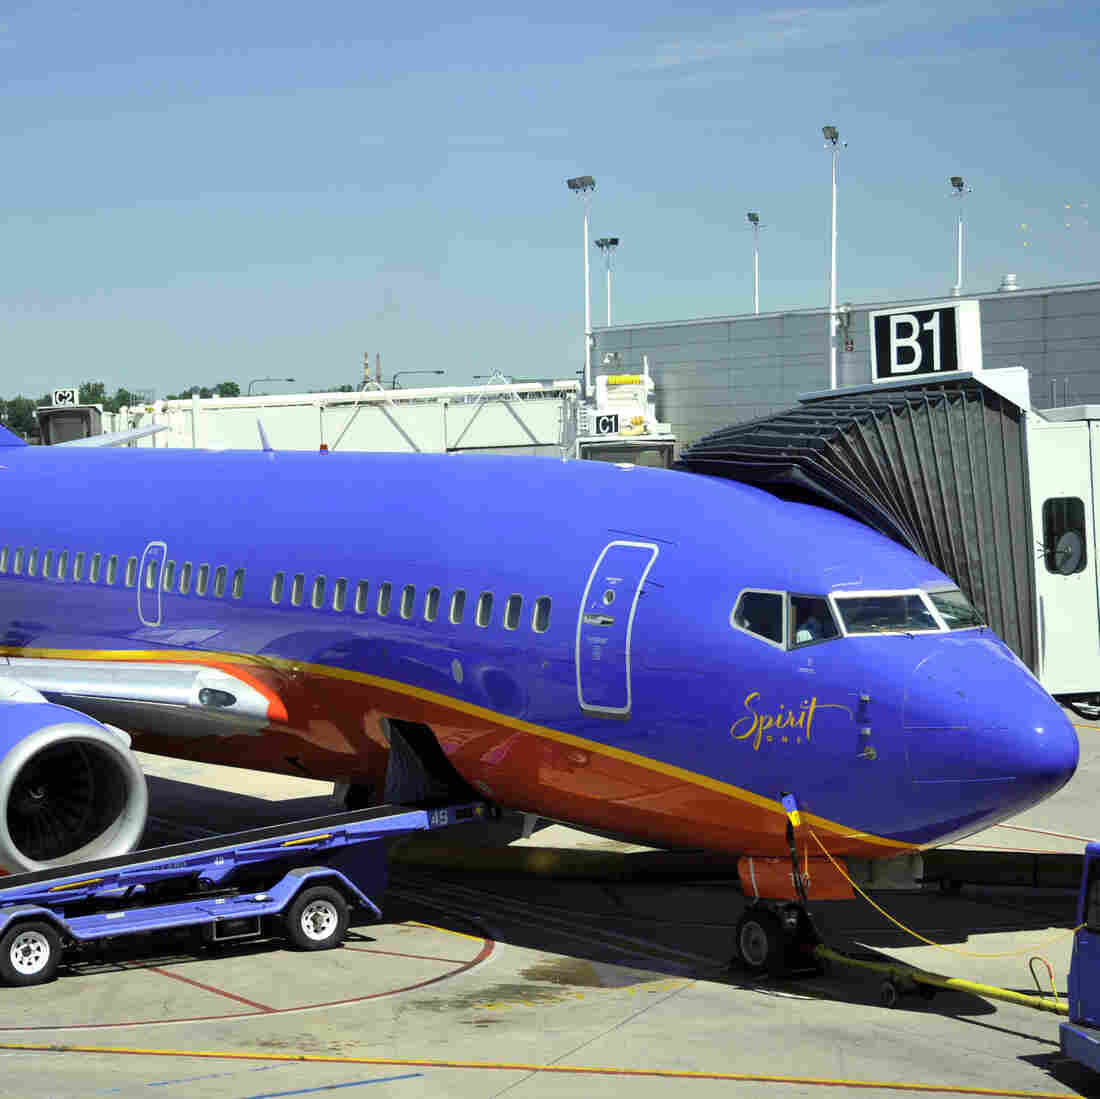 Southwest Airlines Computer Outage Causes Delays, Cancellations